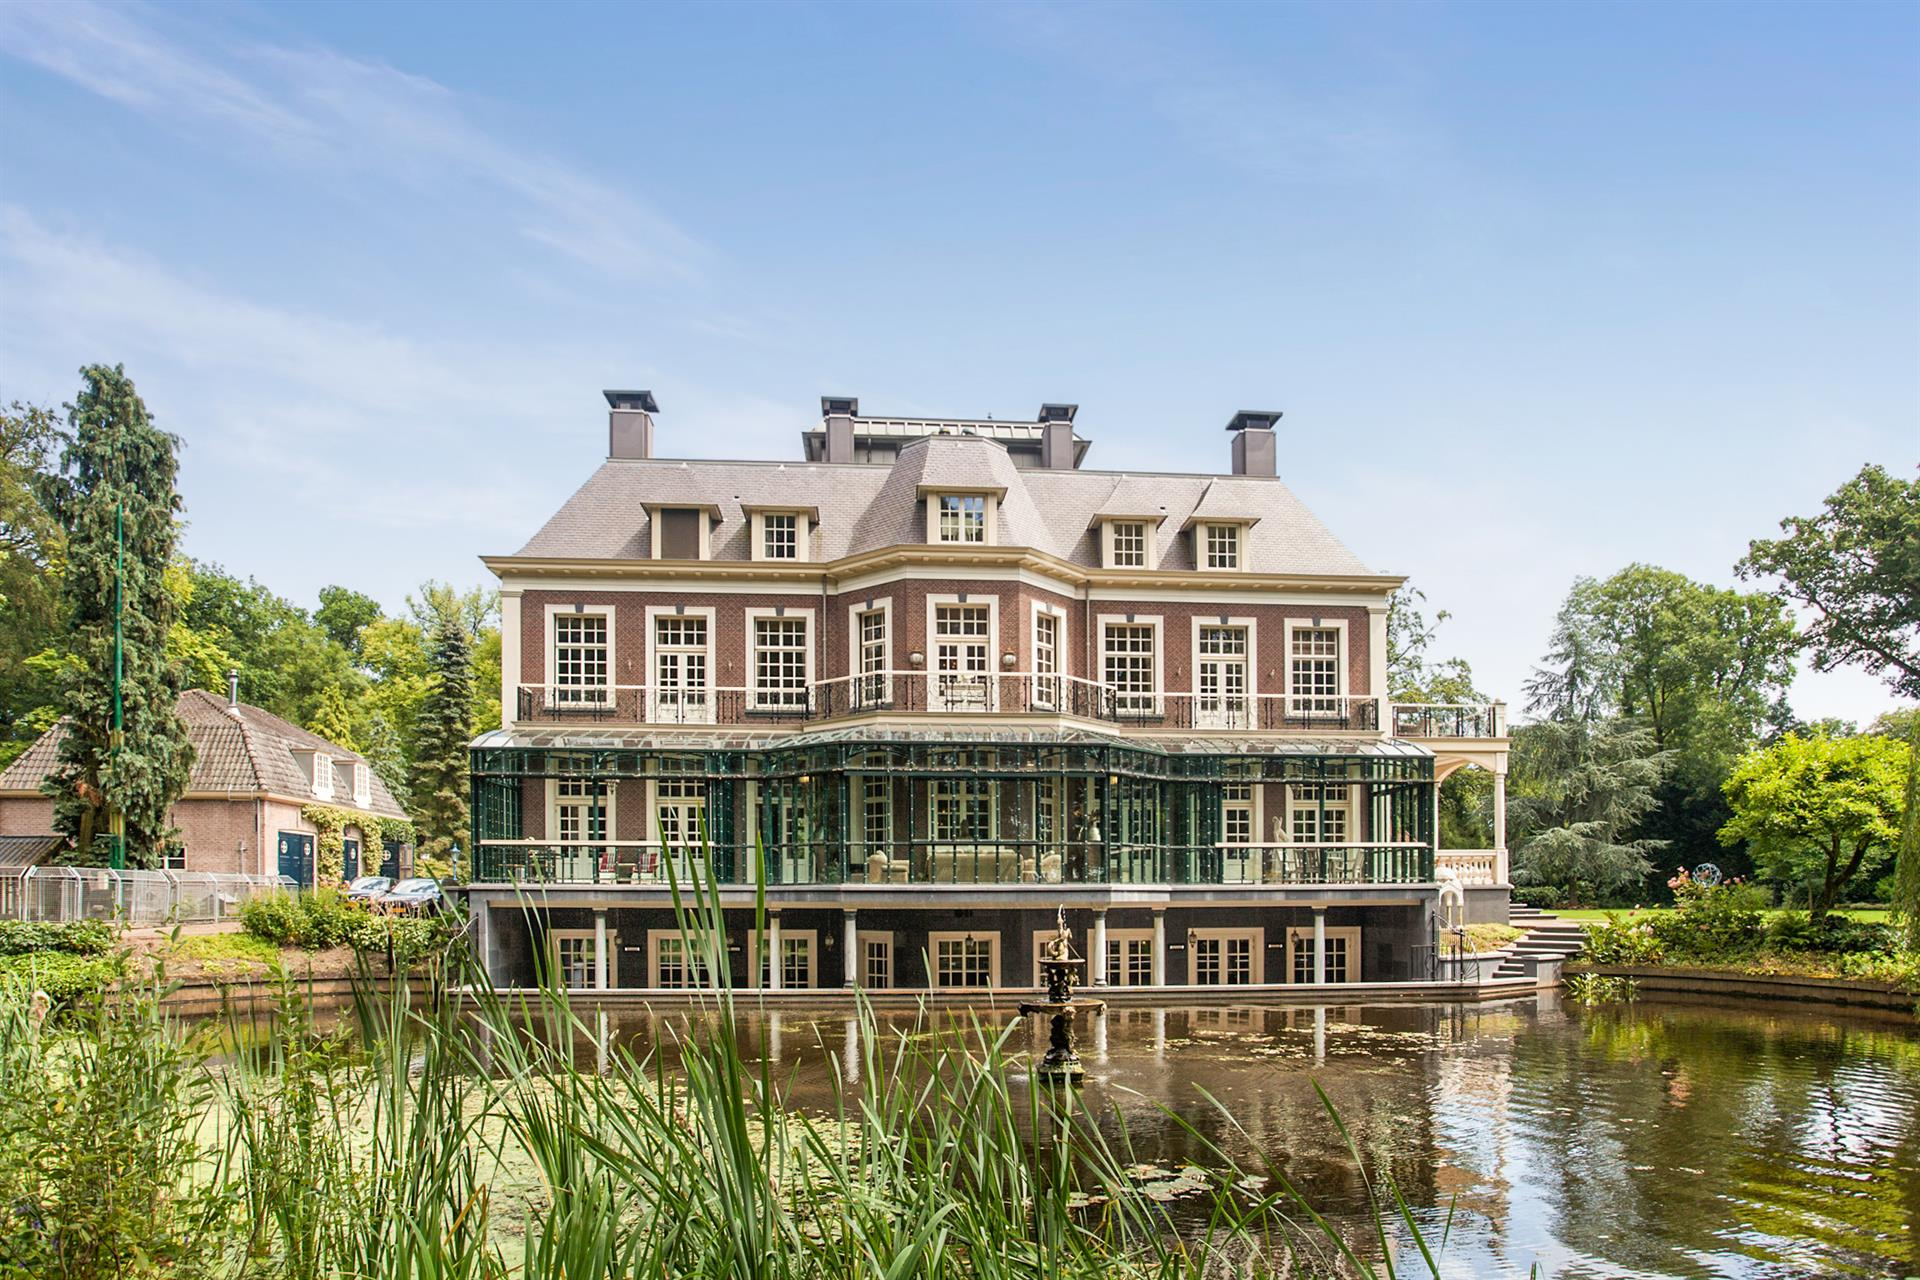 Netherlands Real Estate And Apartments For Sale Christies